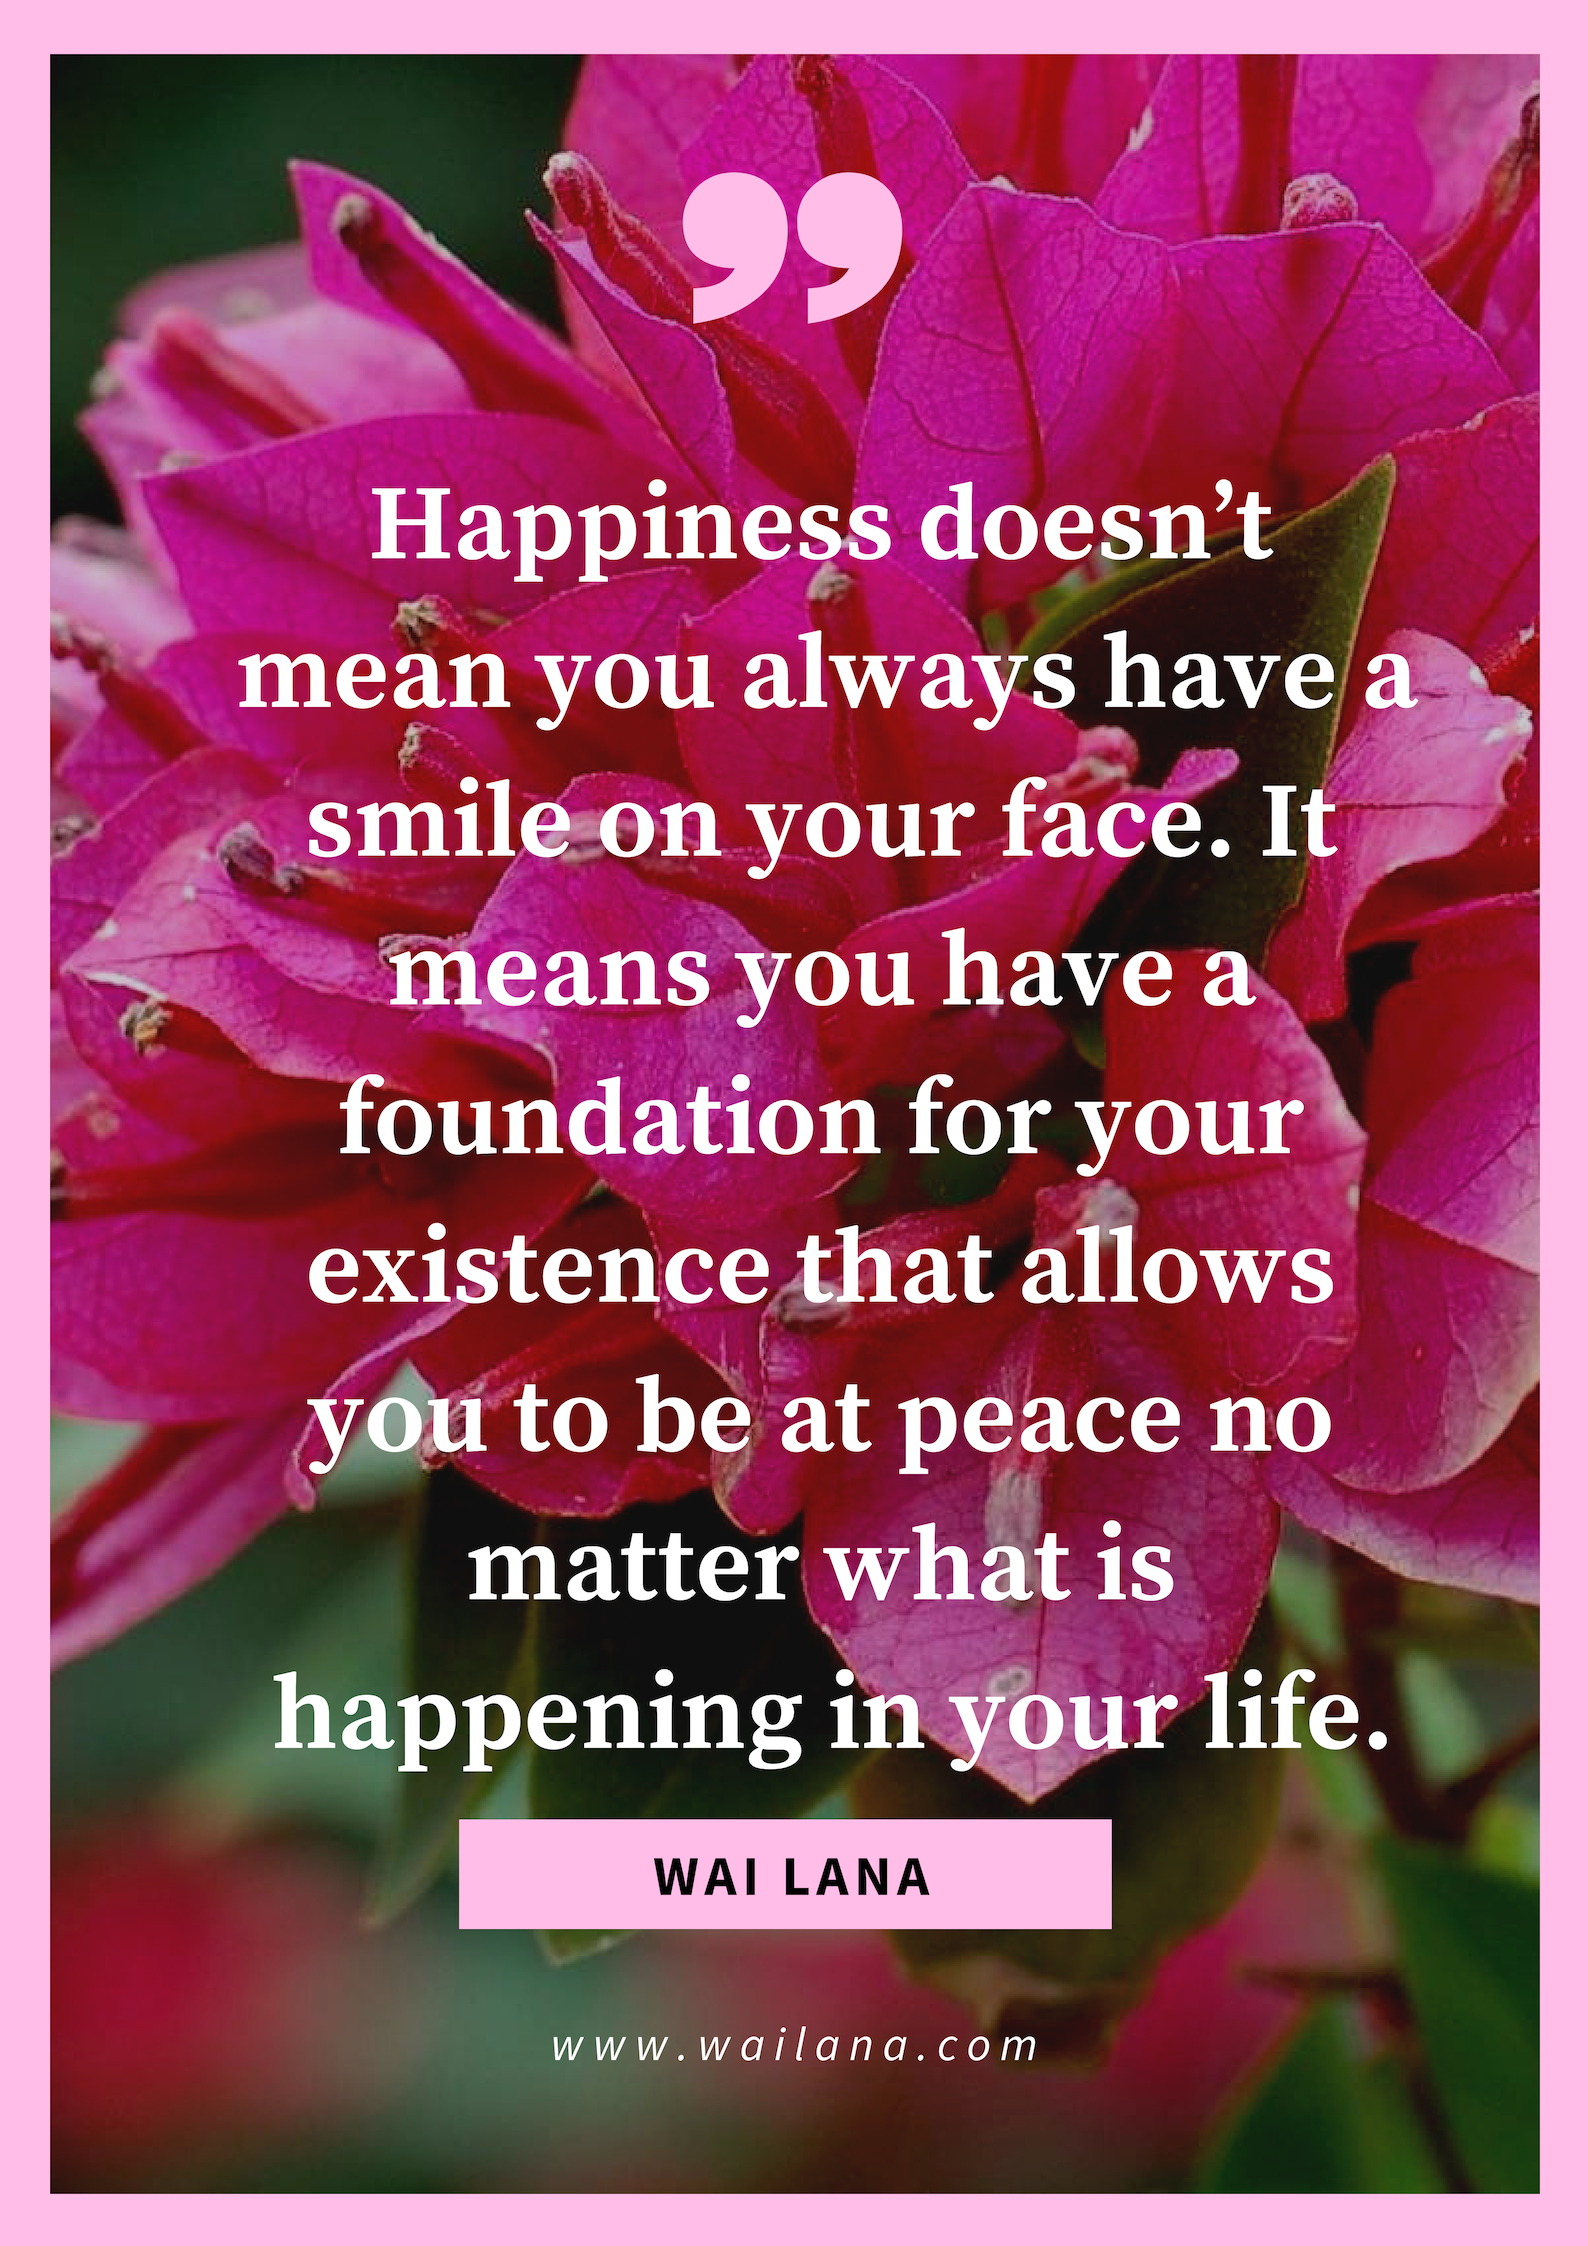 Happiness is matters